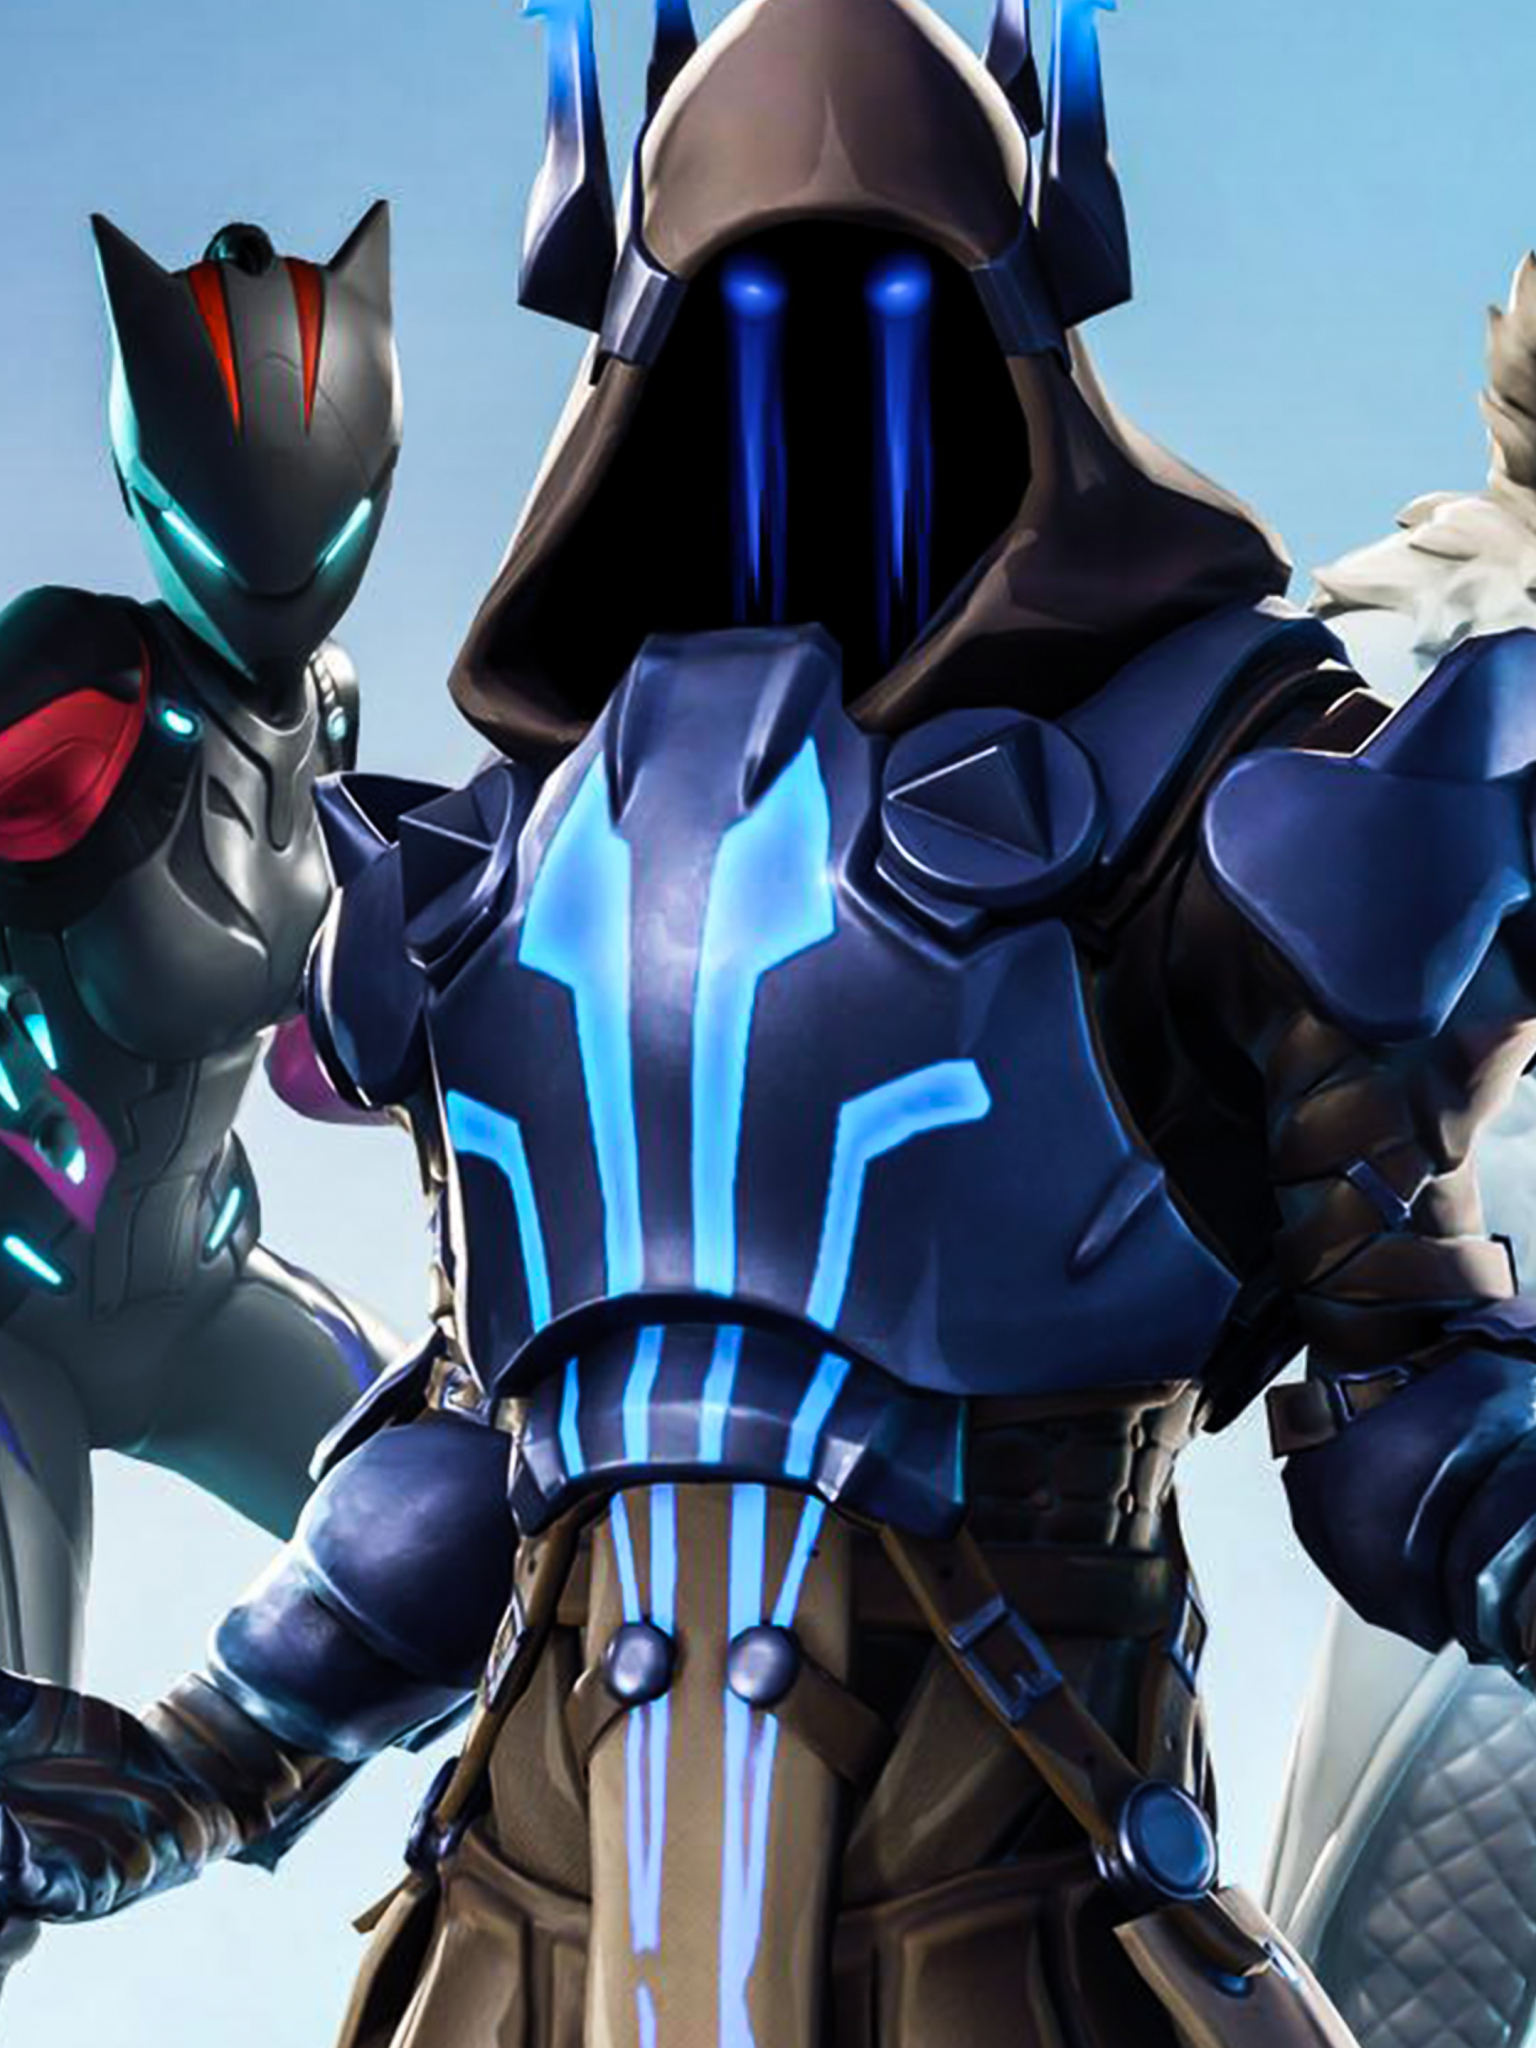 Free Download Download Ice King Fortnite Pure 4k Ultra Hd Mobile Wallpaper 2160x3840 For Your Desktop Mobile Tablet Explore 38 Fortnite Ice King Wallpapers Ice King Fortnite Wallpapers Fortnite